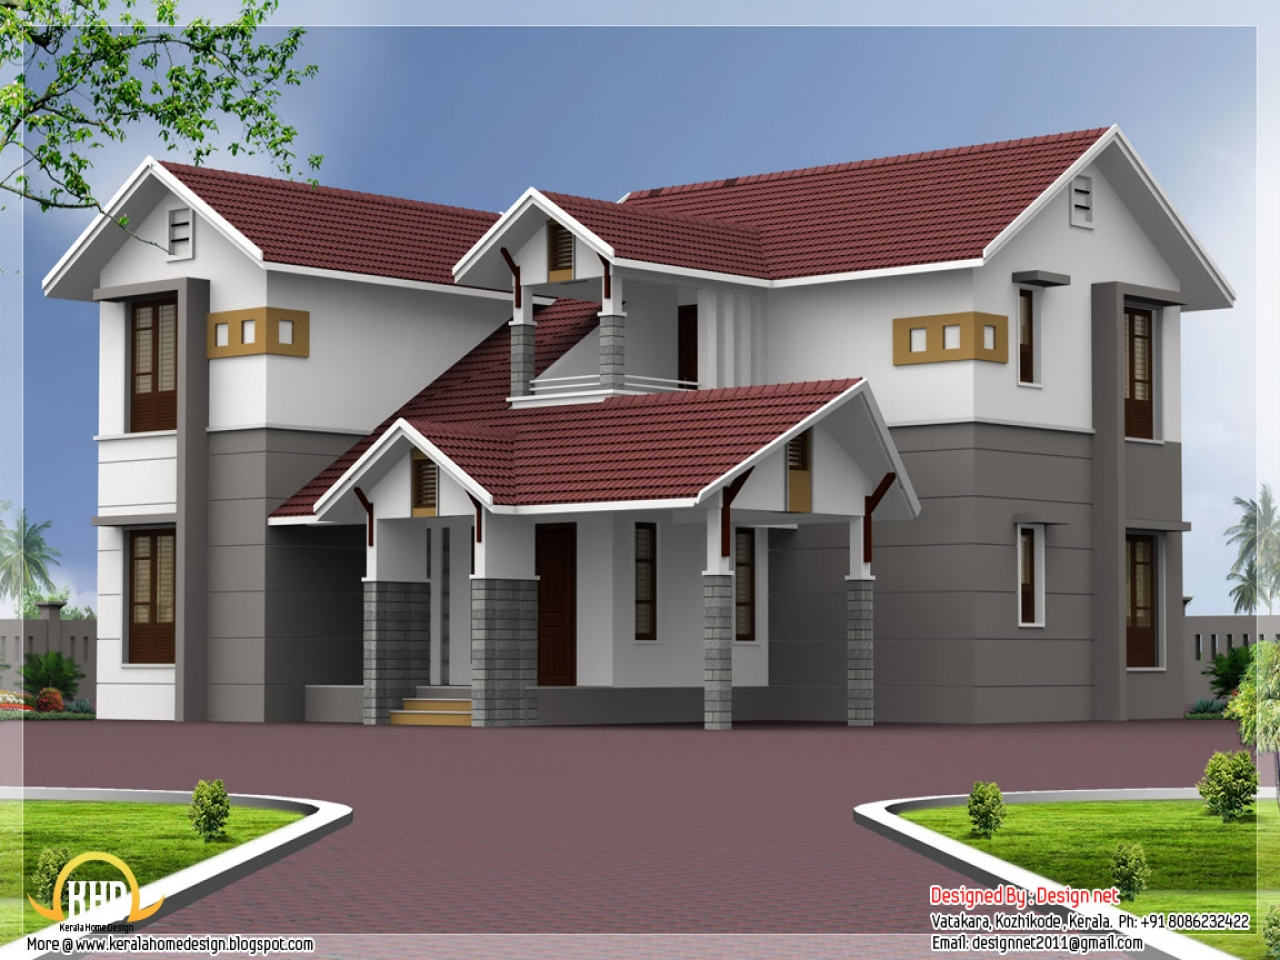 2b4d9c17da1b5a38 Red Roof House Clip Art Houses With Red Roofs Designs on Flat Roof Modern House Plans